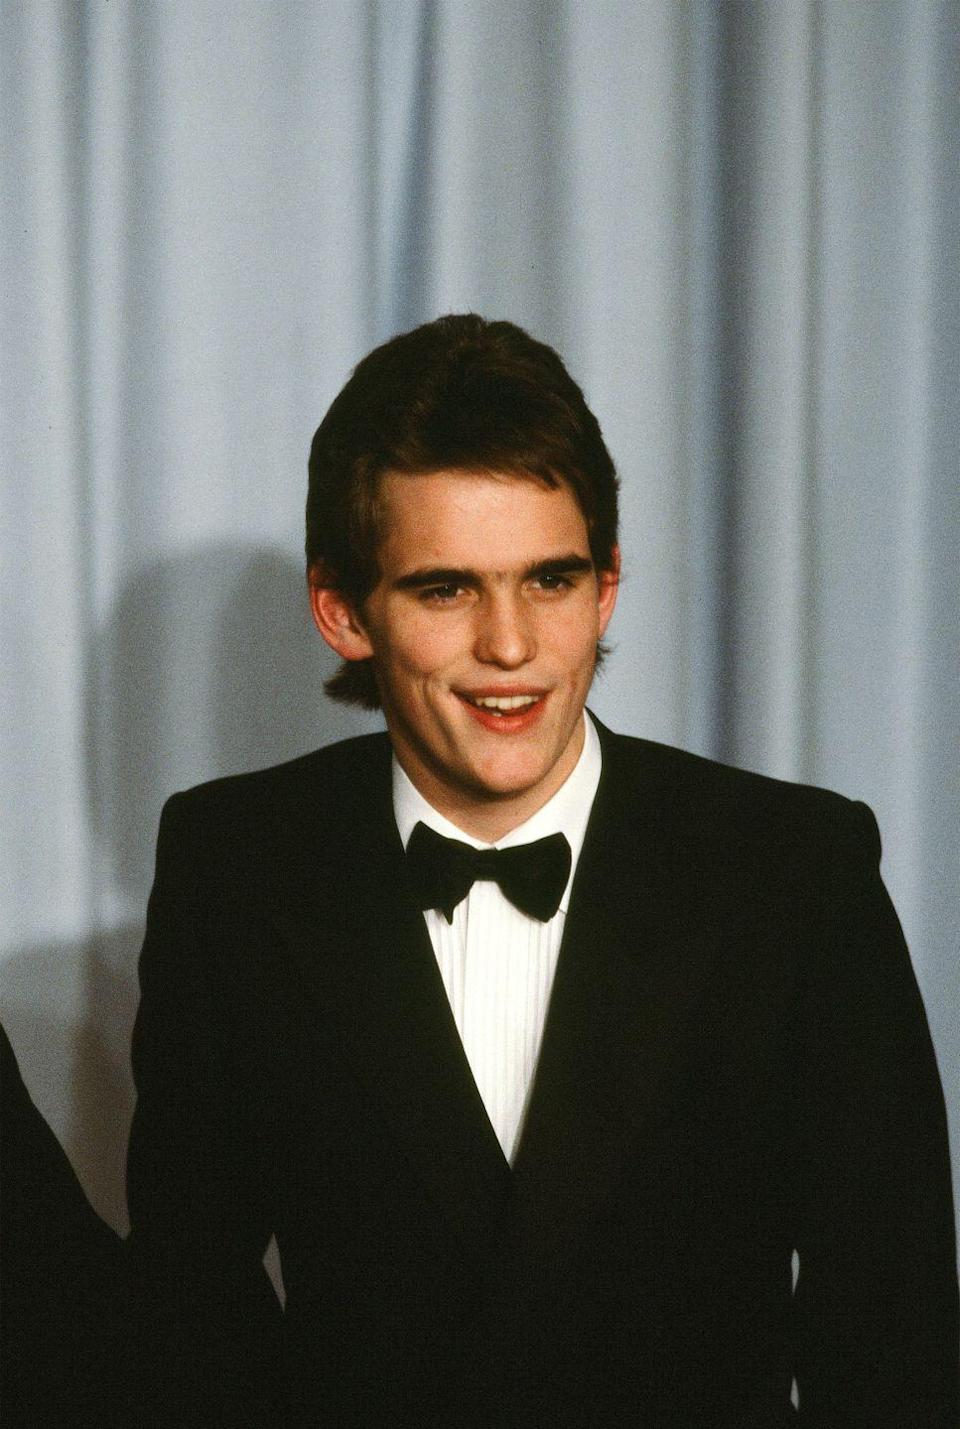 <p>Matt Dillon starred in a few films in the '80s, which launched his career as a teen idol. Lest you forget, he was a lead in <em>My Bodyguard</em>, <em>Little Darlings</em>, <em>Tex</em>, and, of course, <em>The Outsiders</em>. </p>